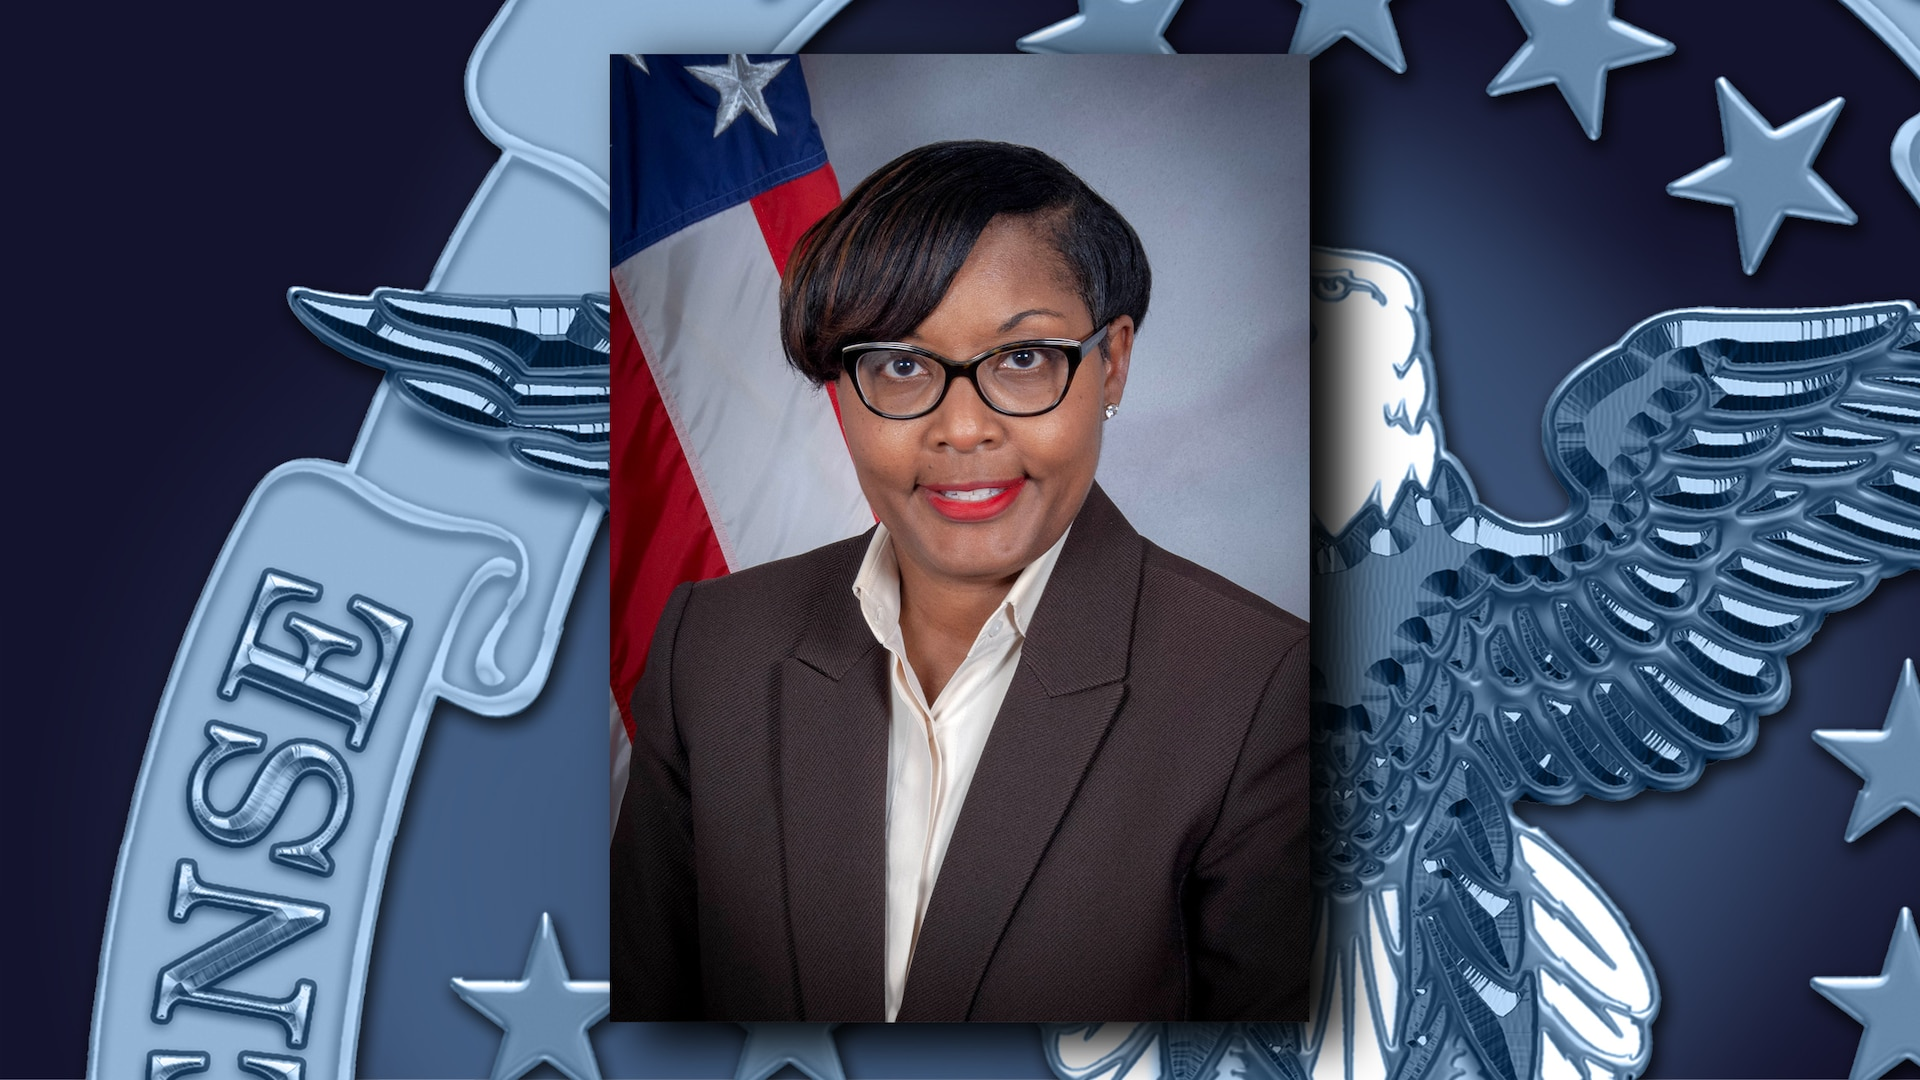 Woman with American flag in background on DLA template/logo.